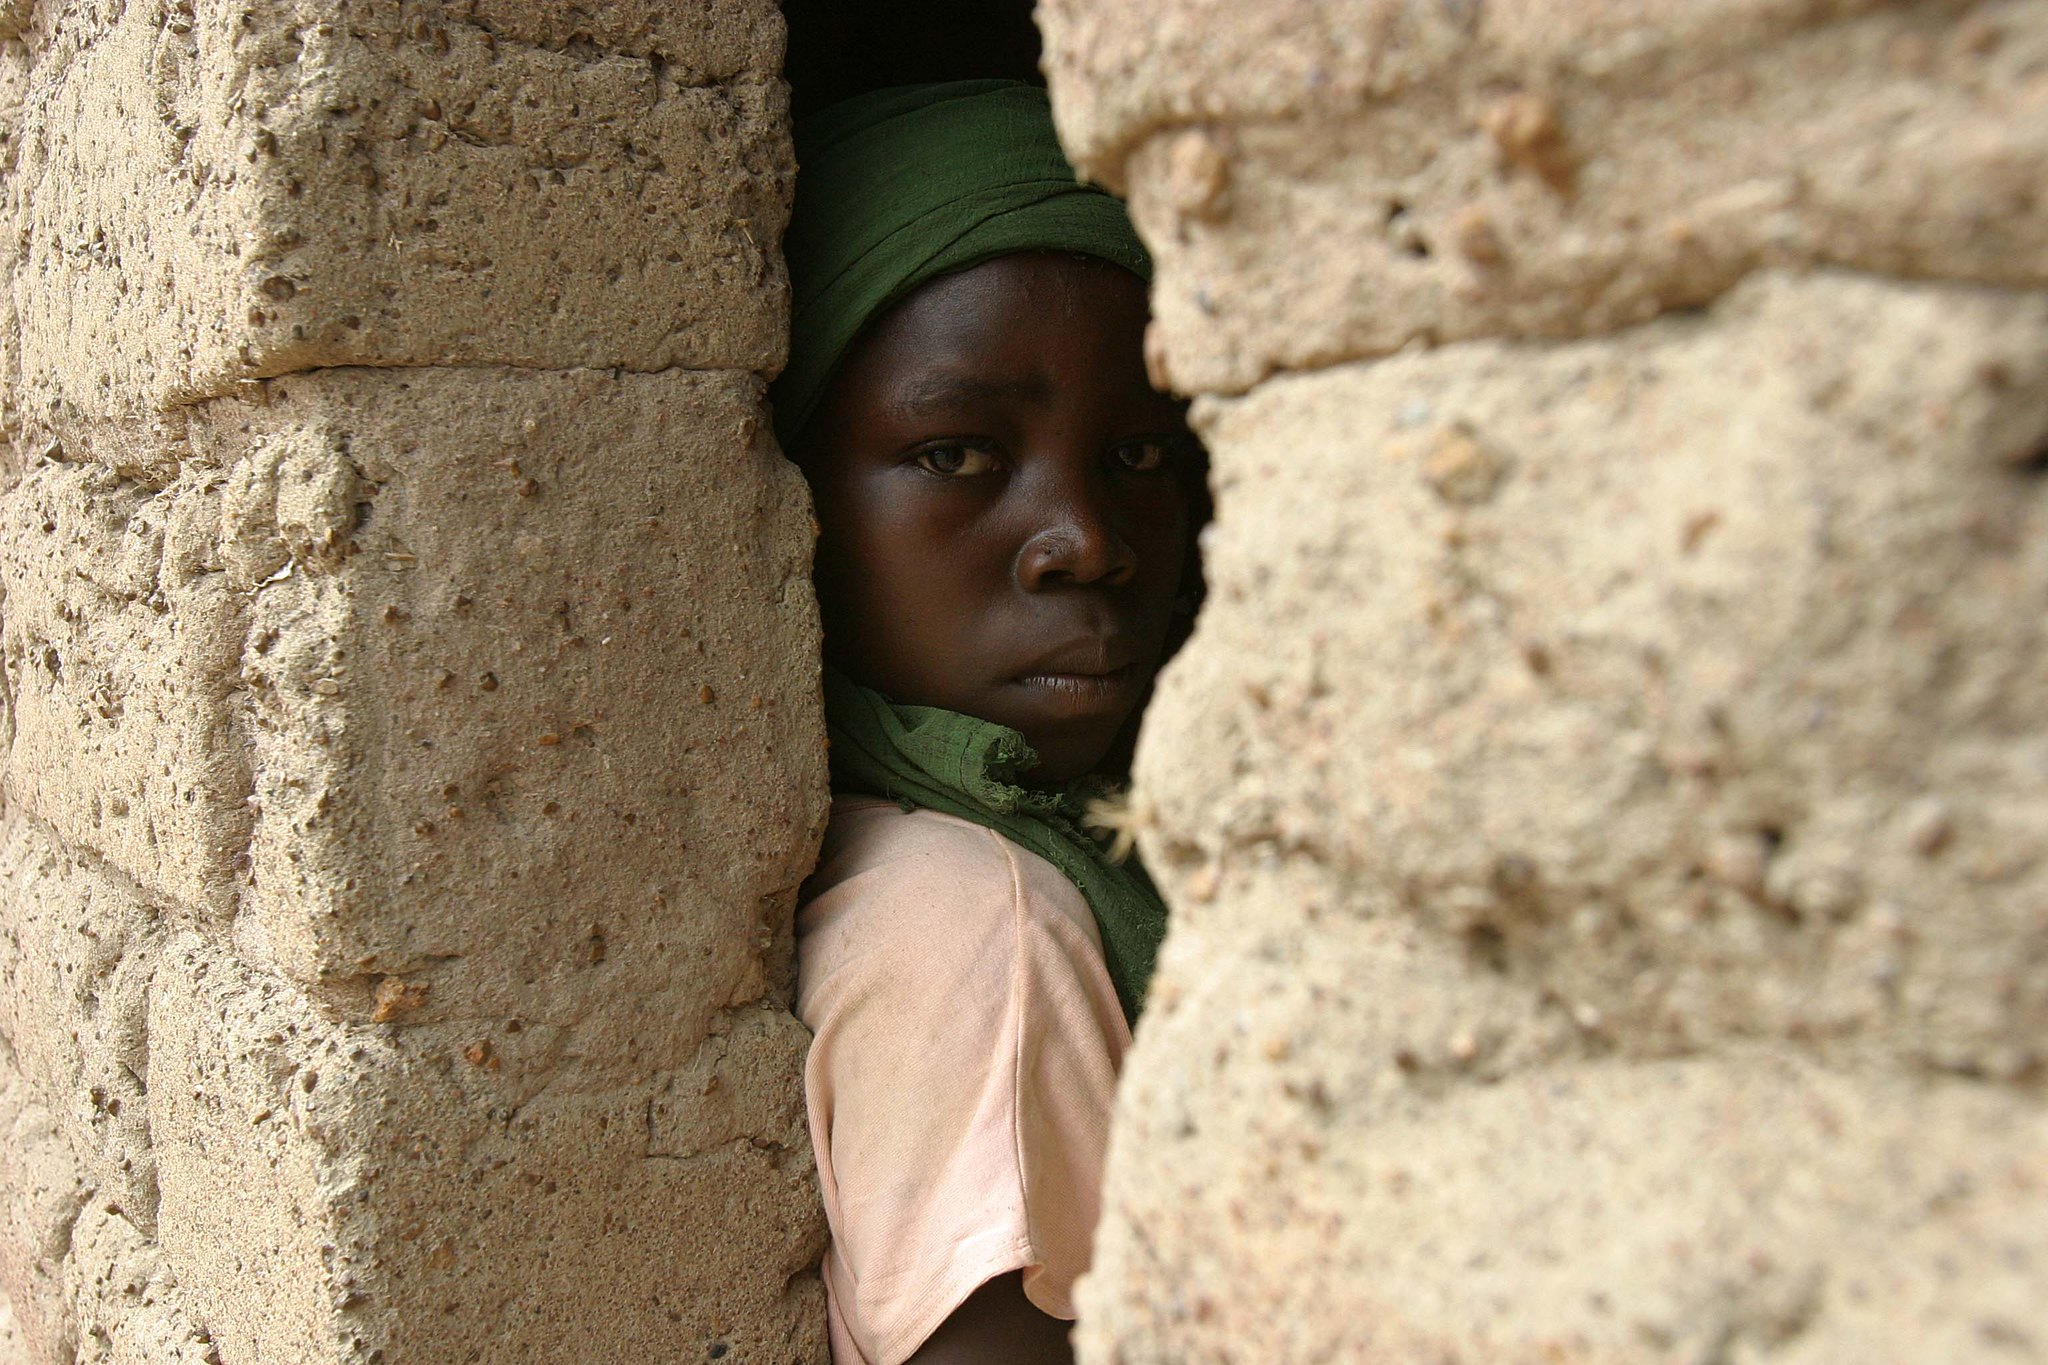 Central African Republic approaches 'failed state' status